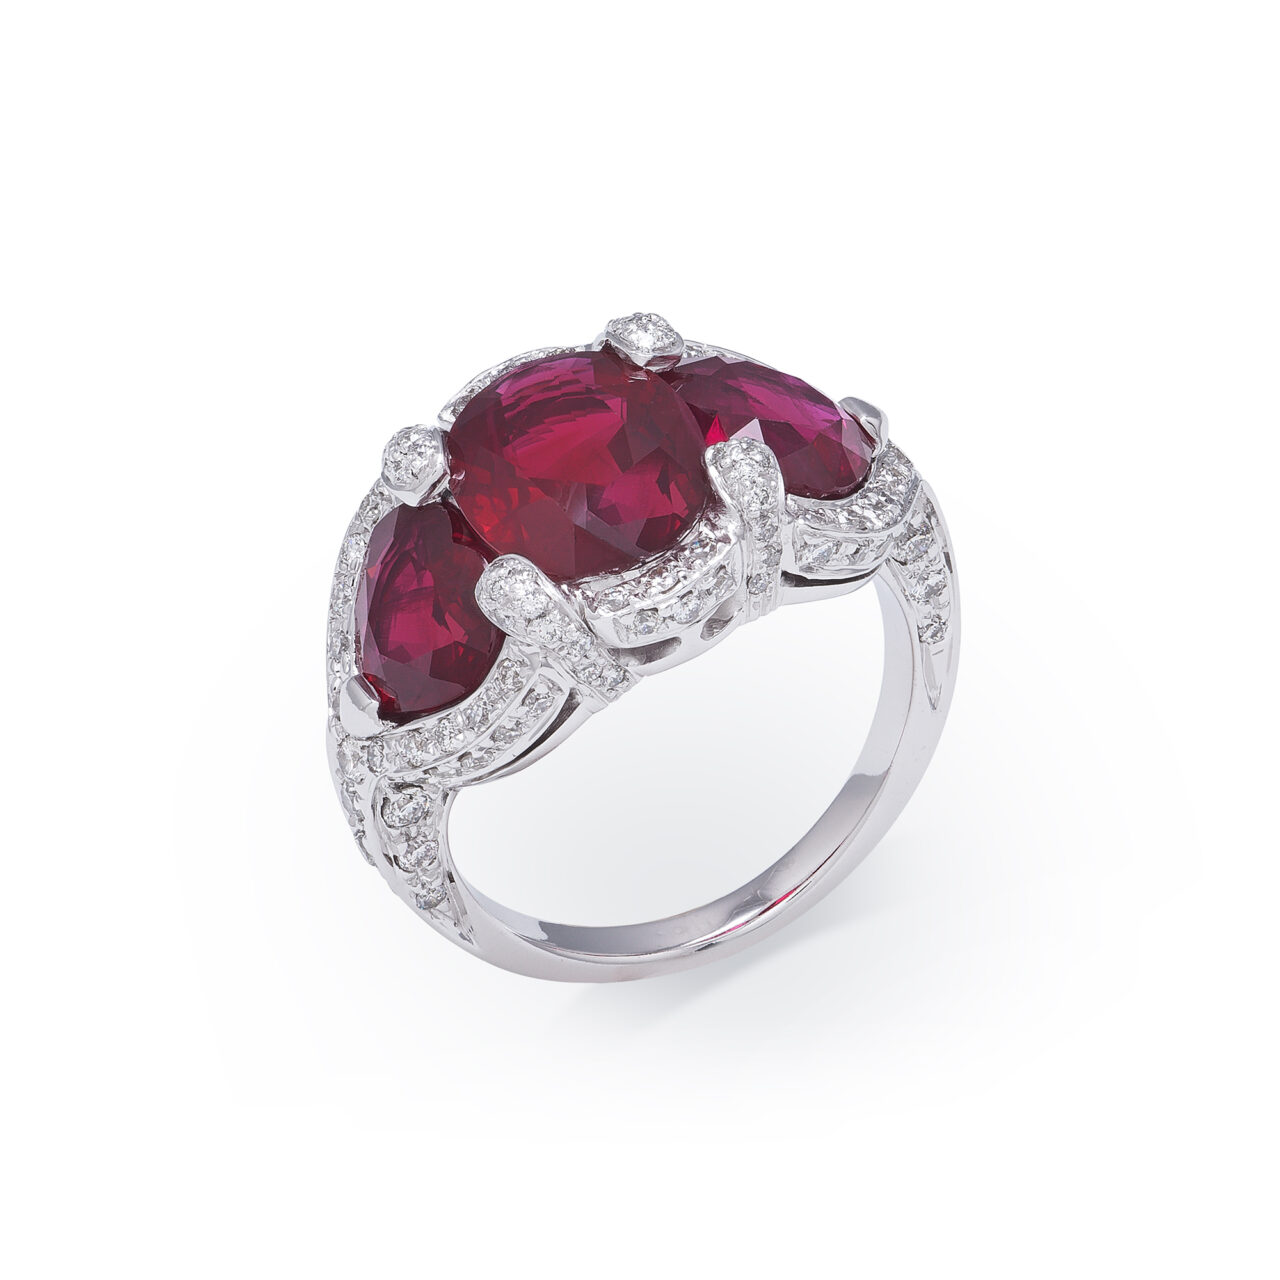 White gold ring with Burmese rubies and diamonds